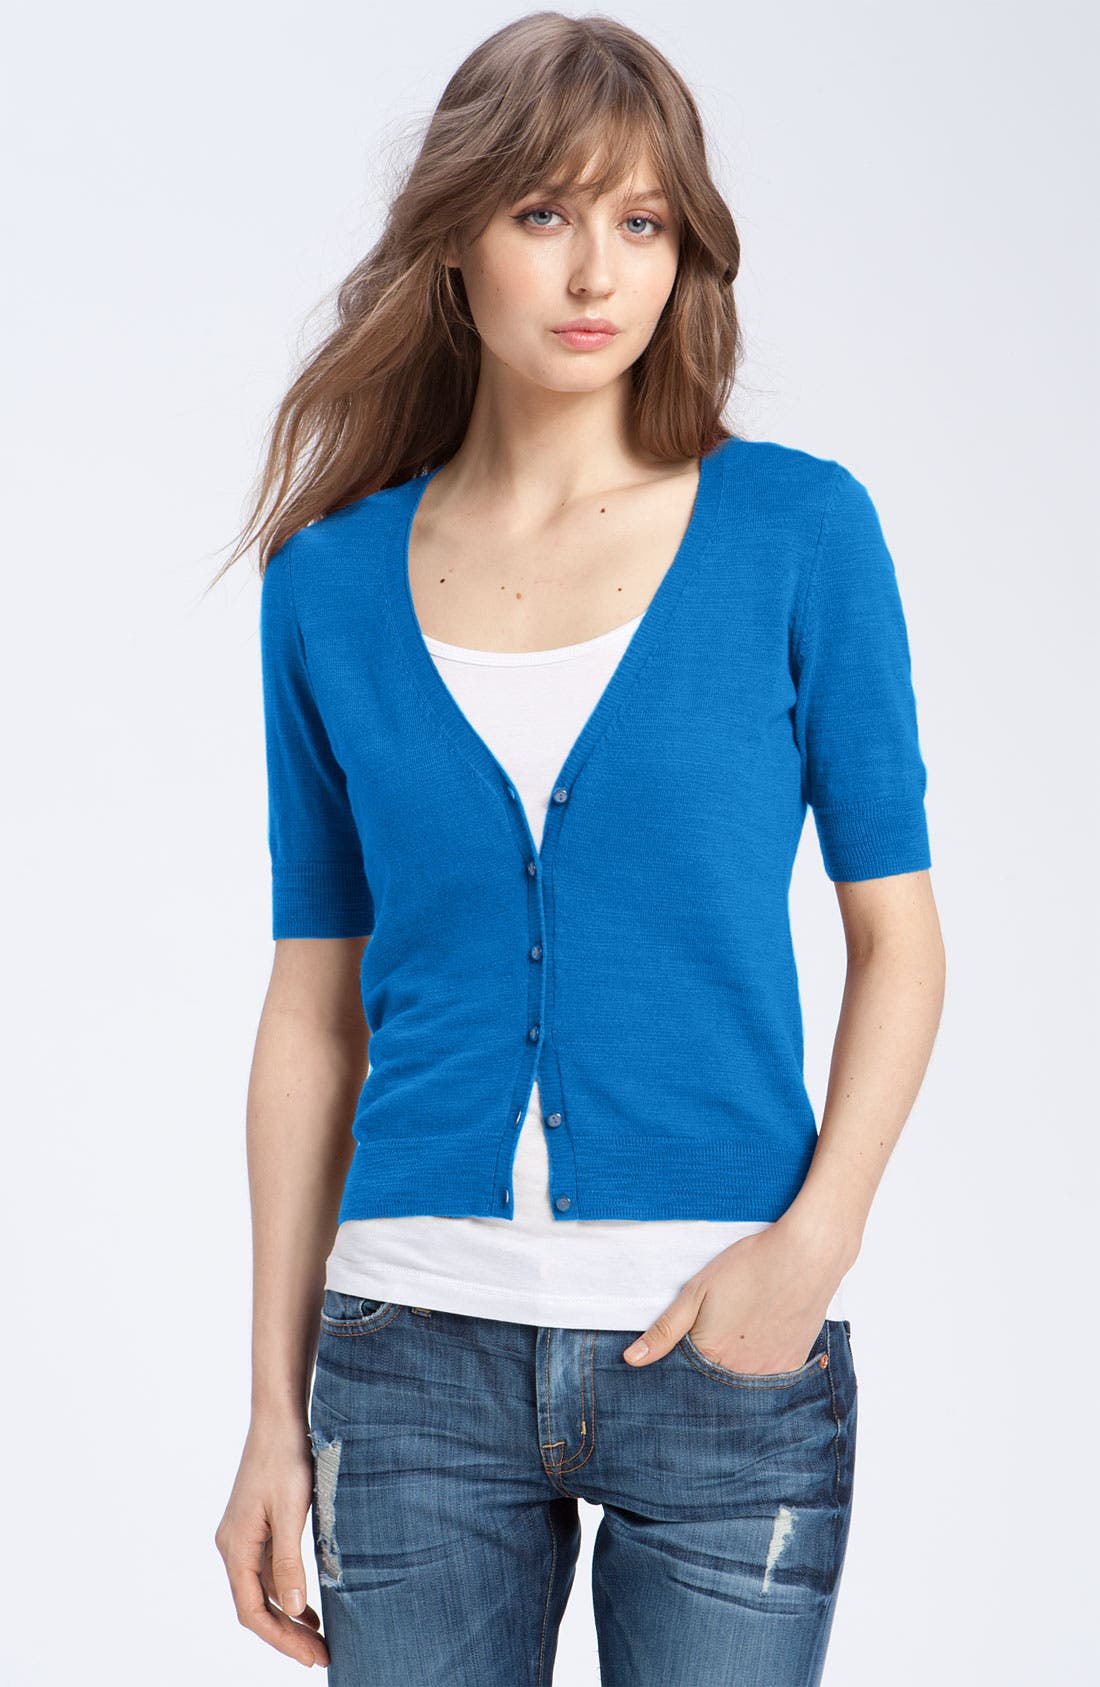 Alternate Image 1 Selected - Caslon® V-Neck Elbow Sleeve Cardigan (Petite)